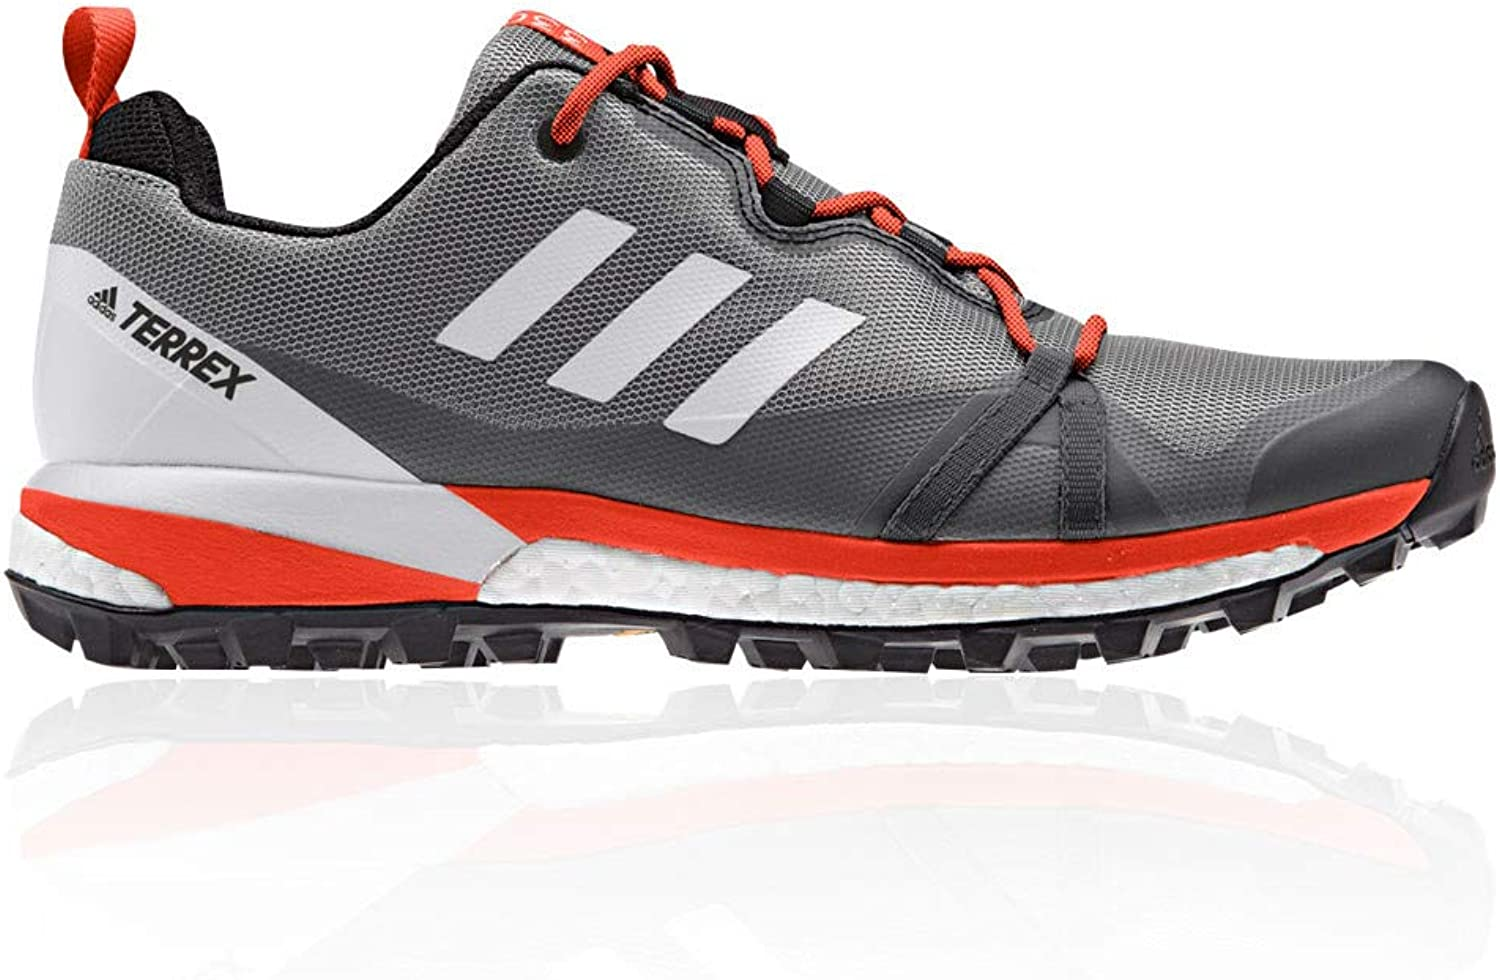 Adidas Terrex Skychaser LT Trail Running shoes - SS19